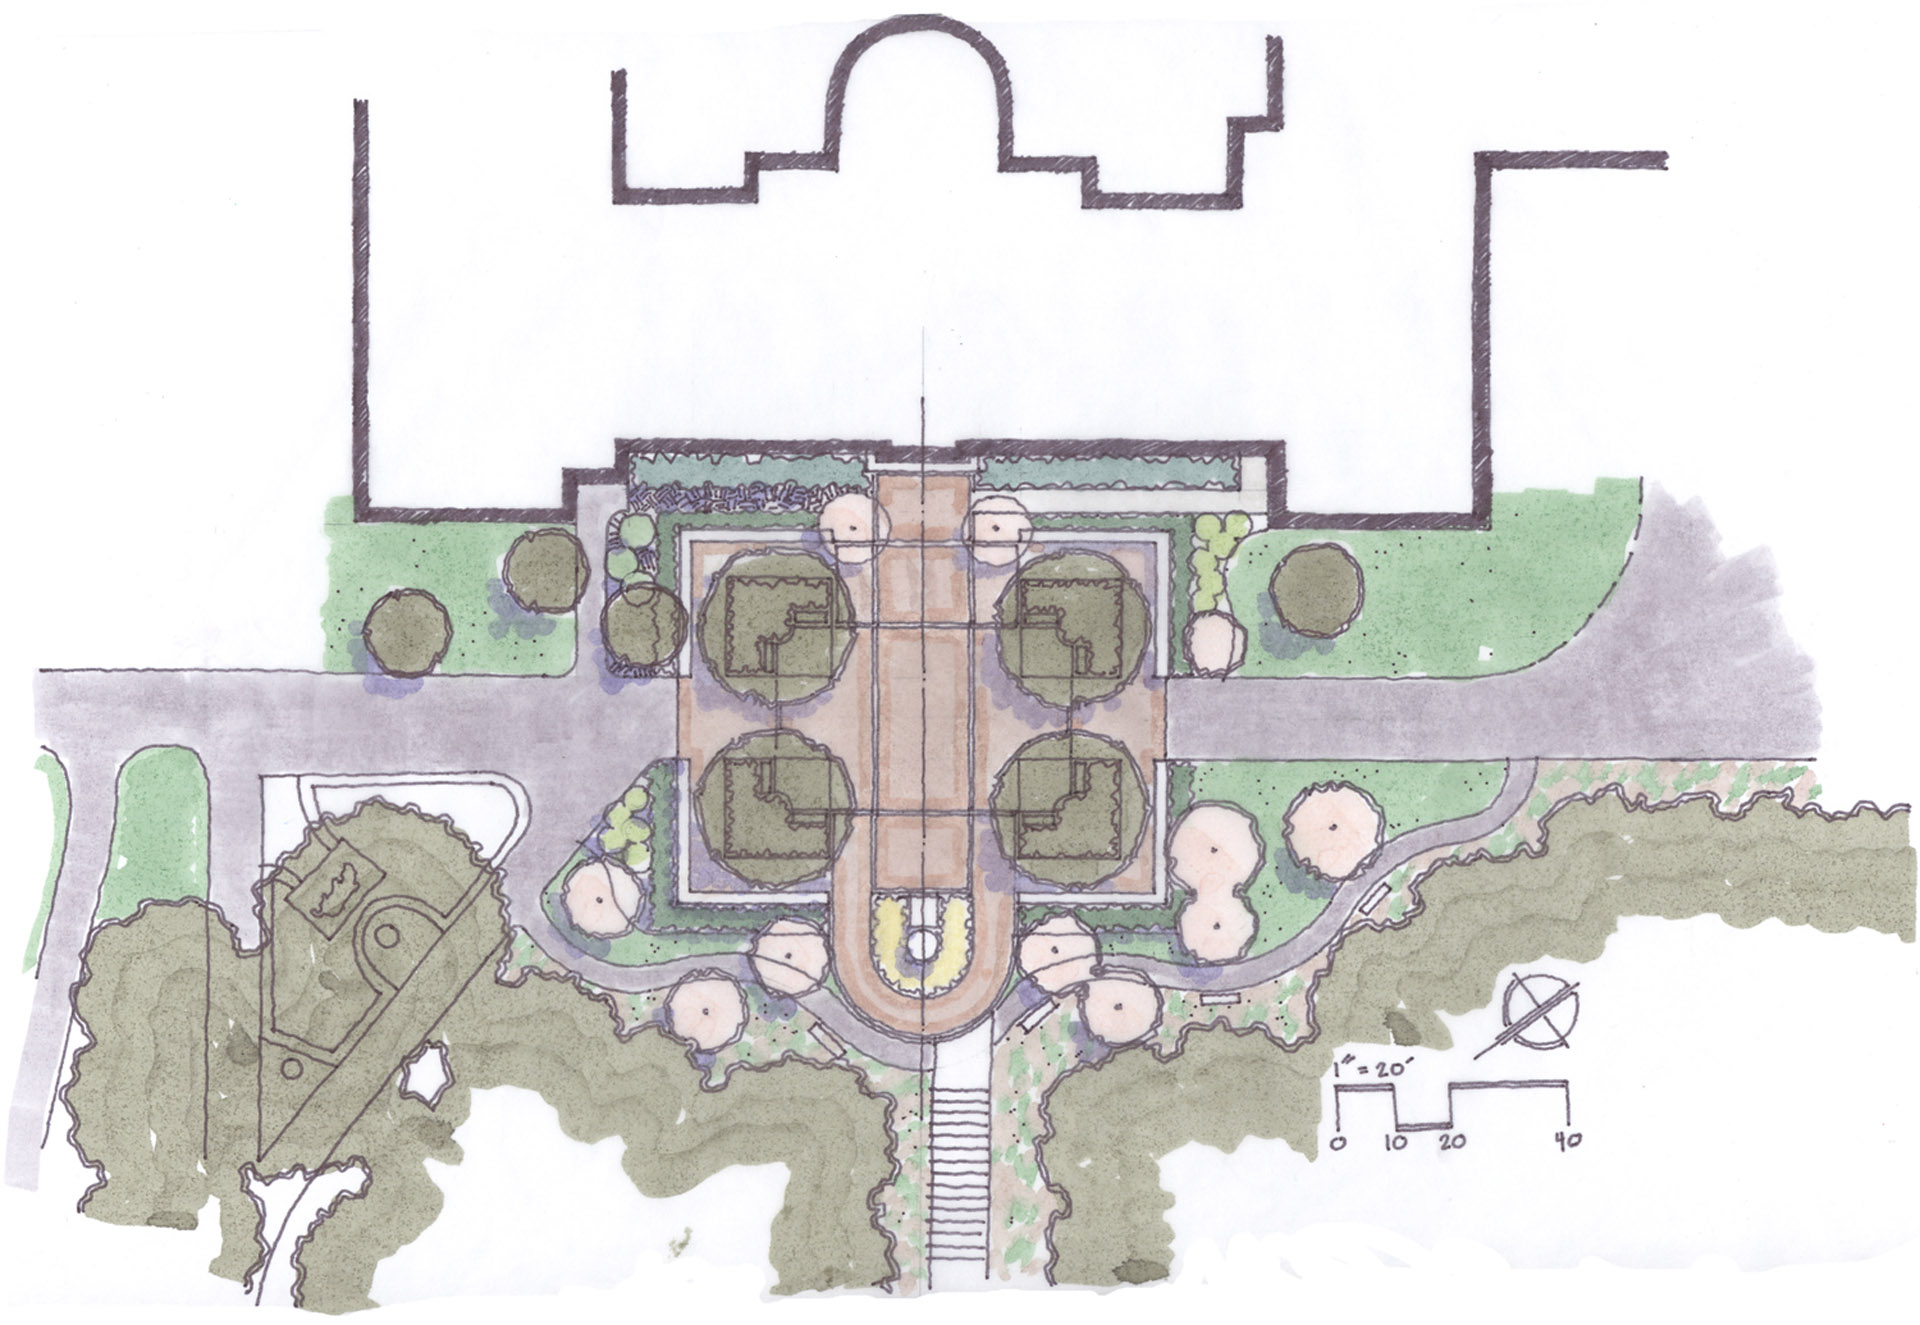 Penn State University Abington Campus Option C Plan